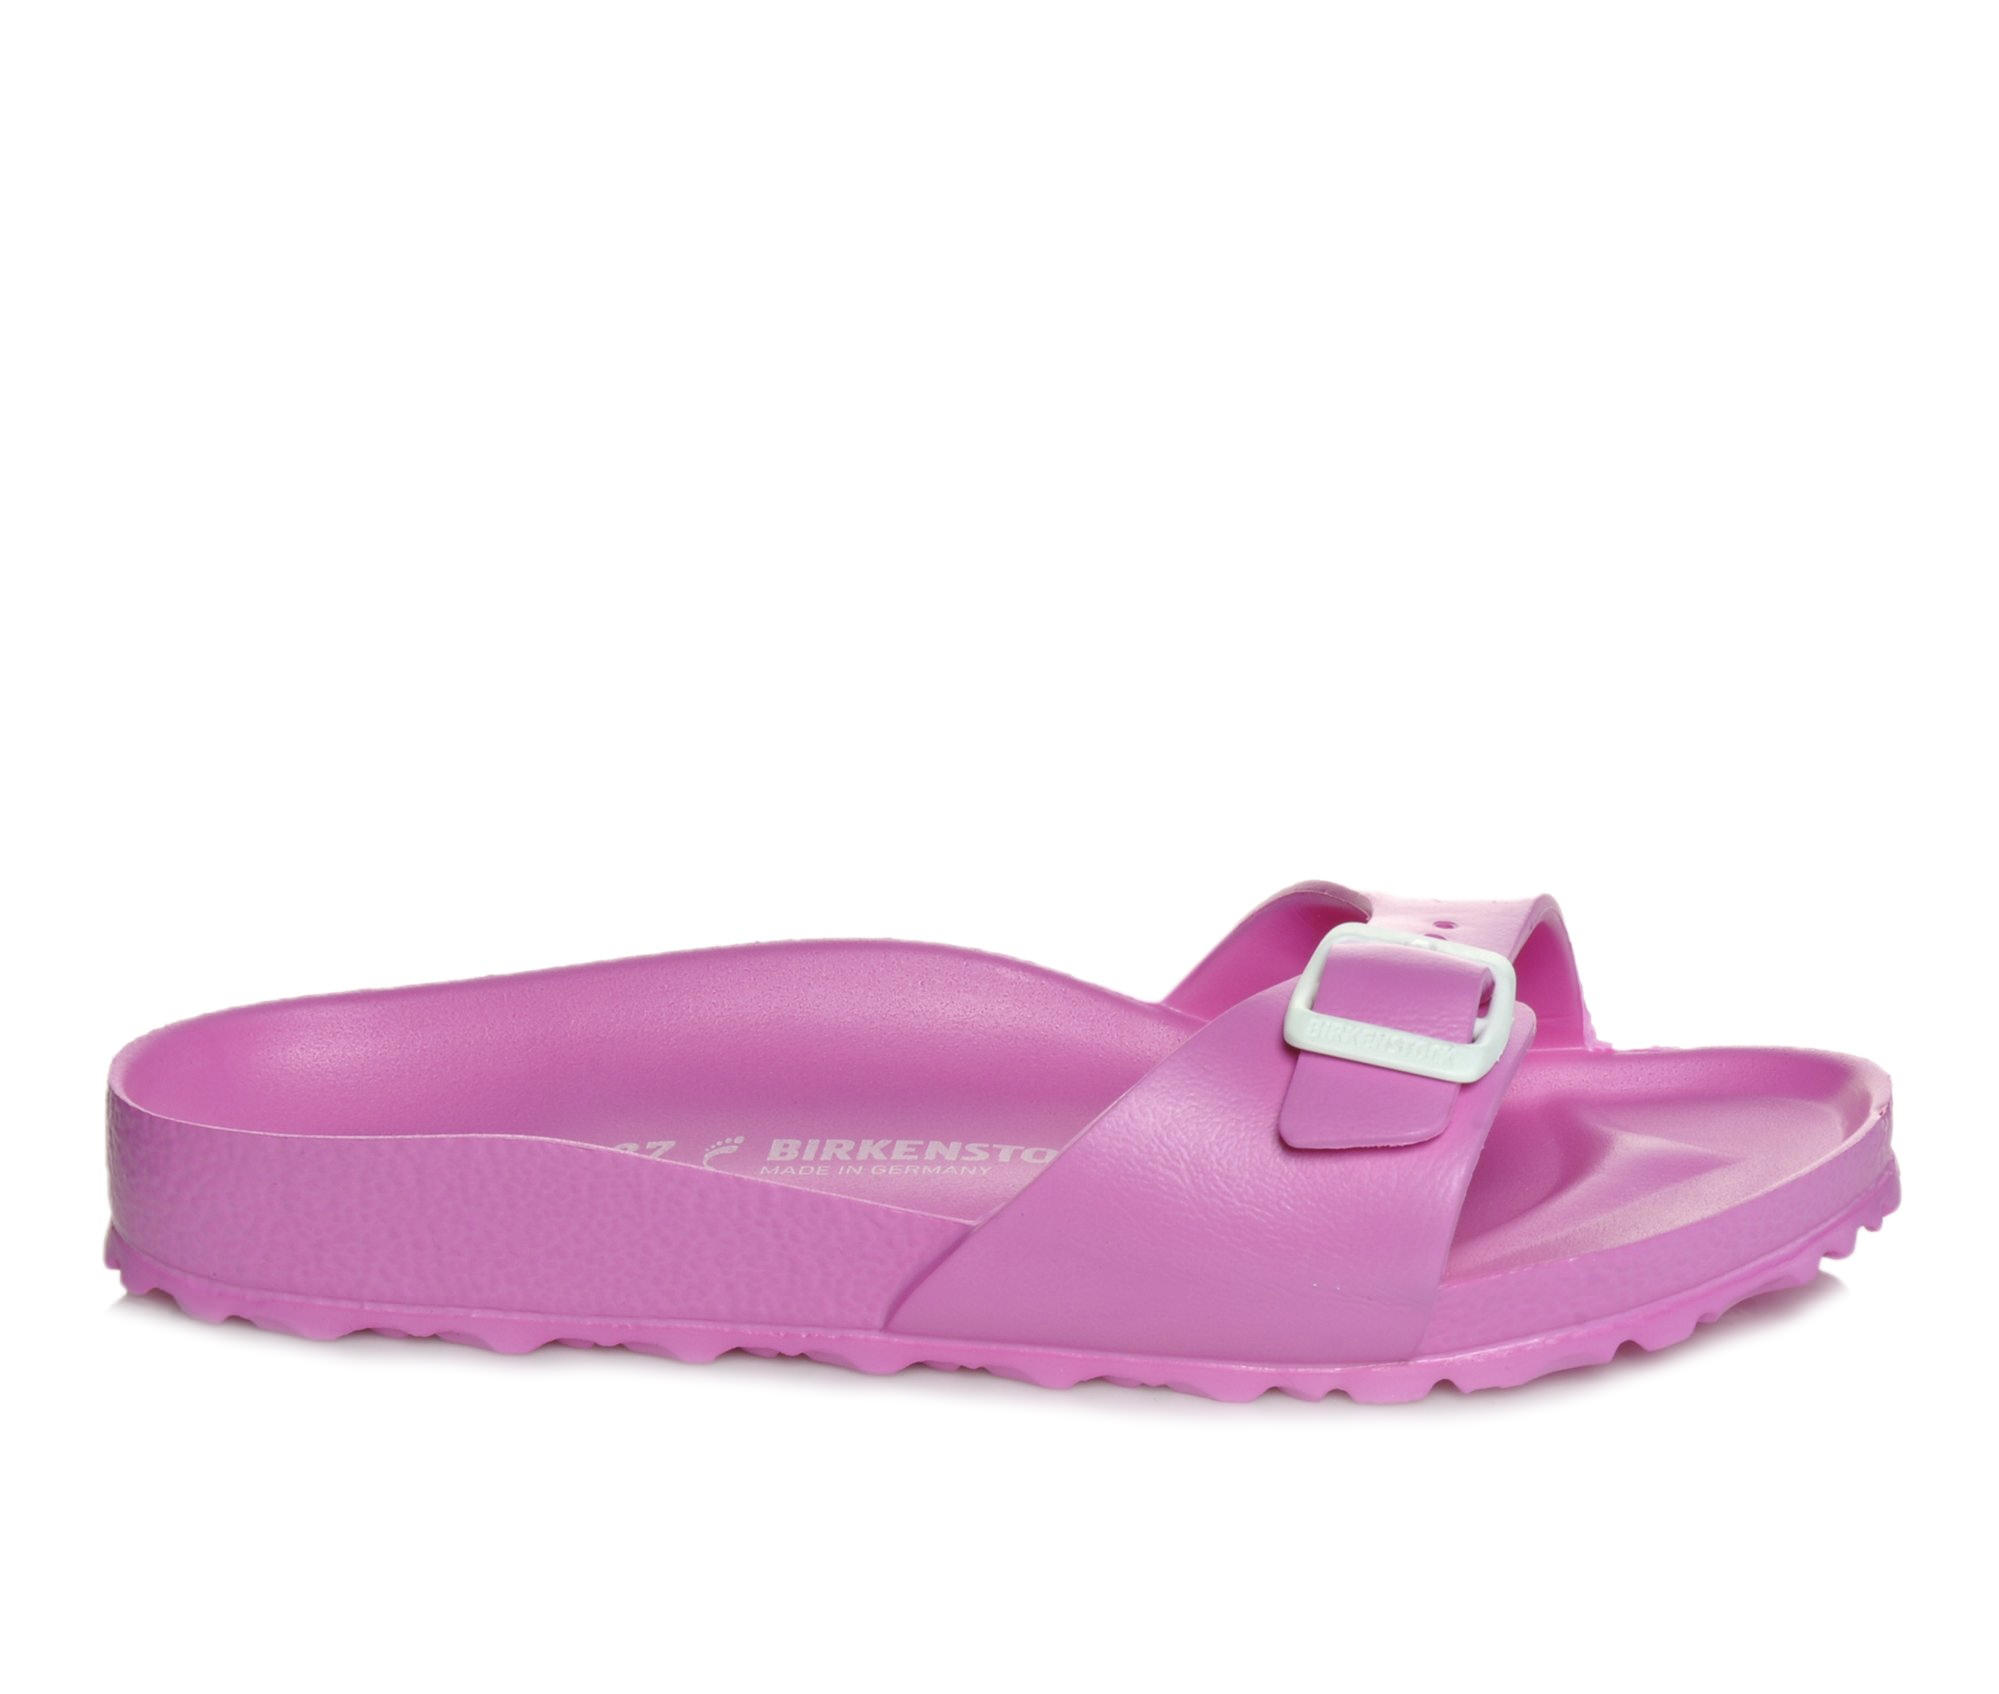 Women's Birkenstock Madrid Essentials Sandals (Pink)